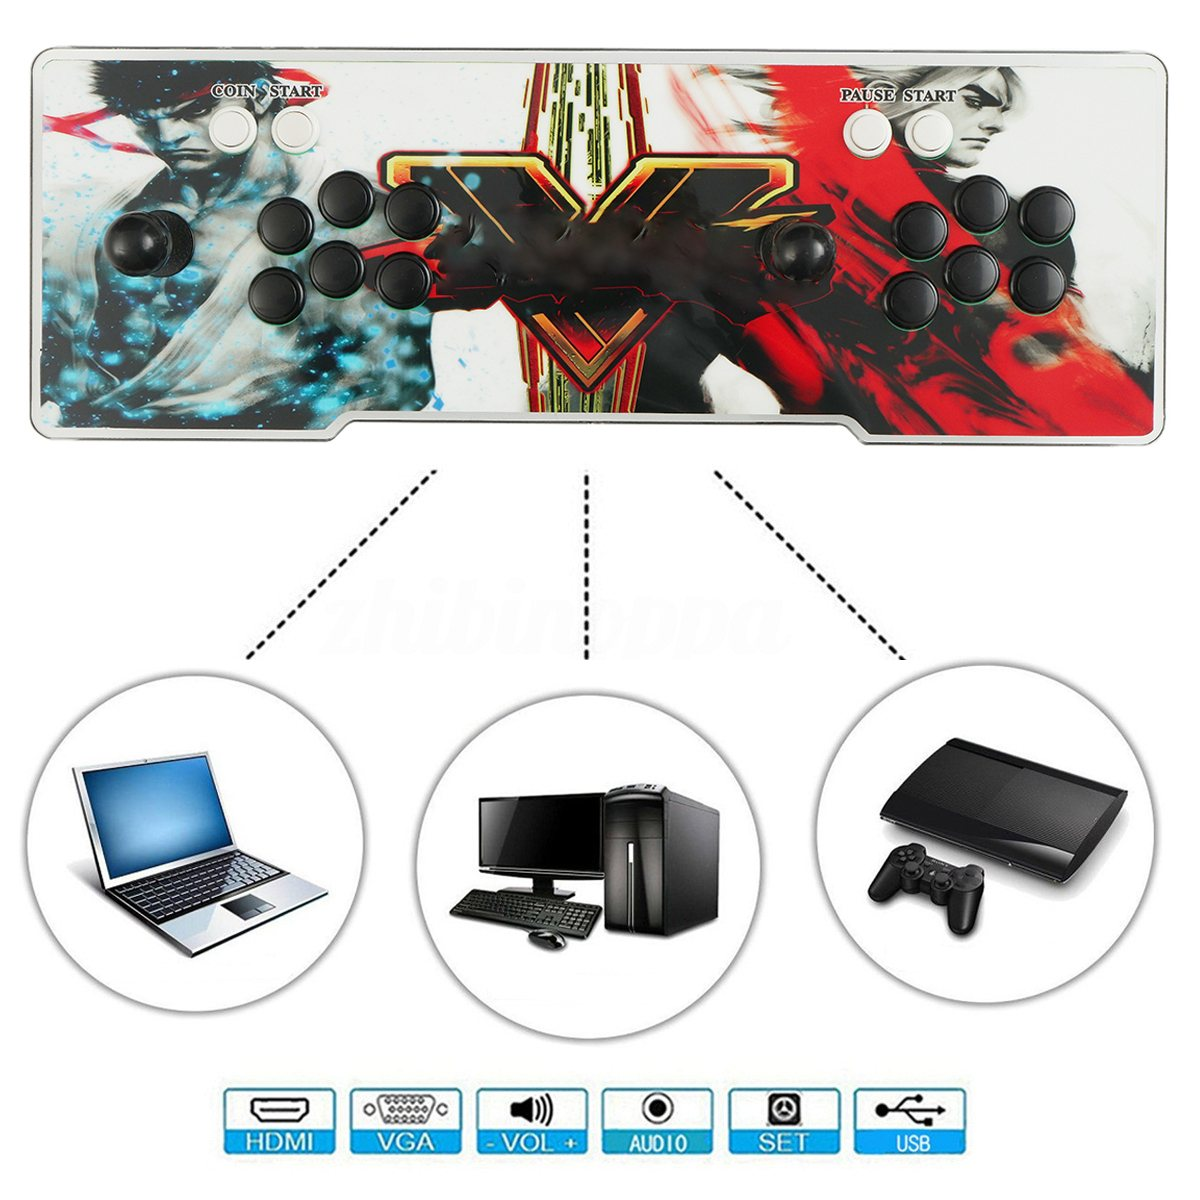 2000 In 1 Heroes Box 5 HDMI Arcade Classic Video Game Console Fight Games Gamepad HD VGA pandora box 4s 2 player arcade console for home 815 in 1 family game consoler with 5 pin 8 way joystick lock button hdmi vga out